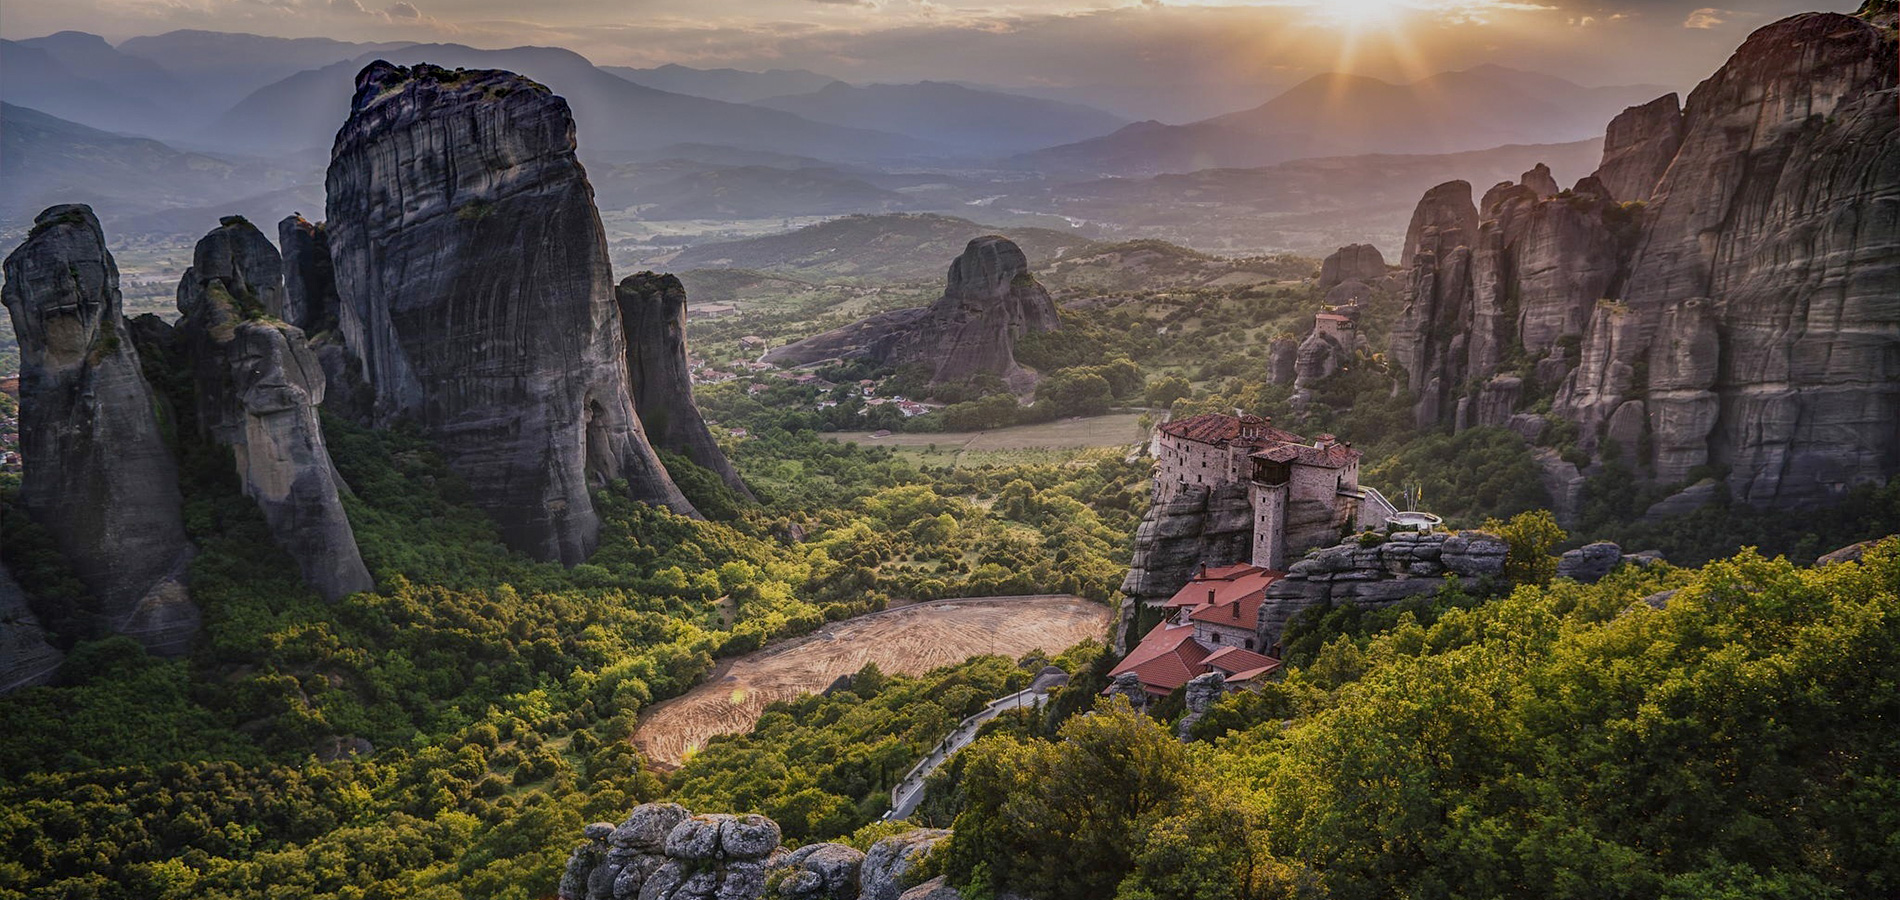 meteora-monasteries-greece